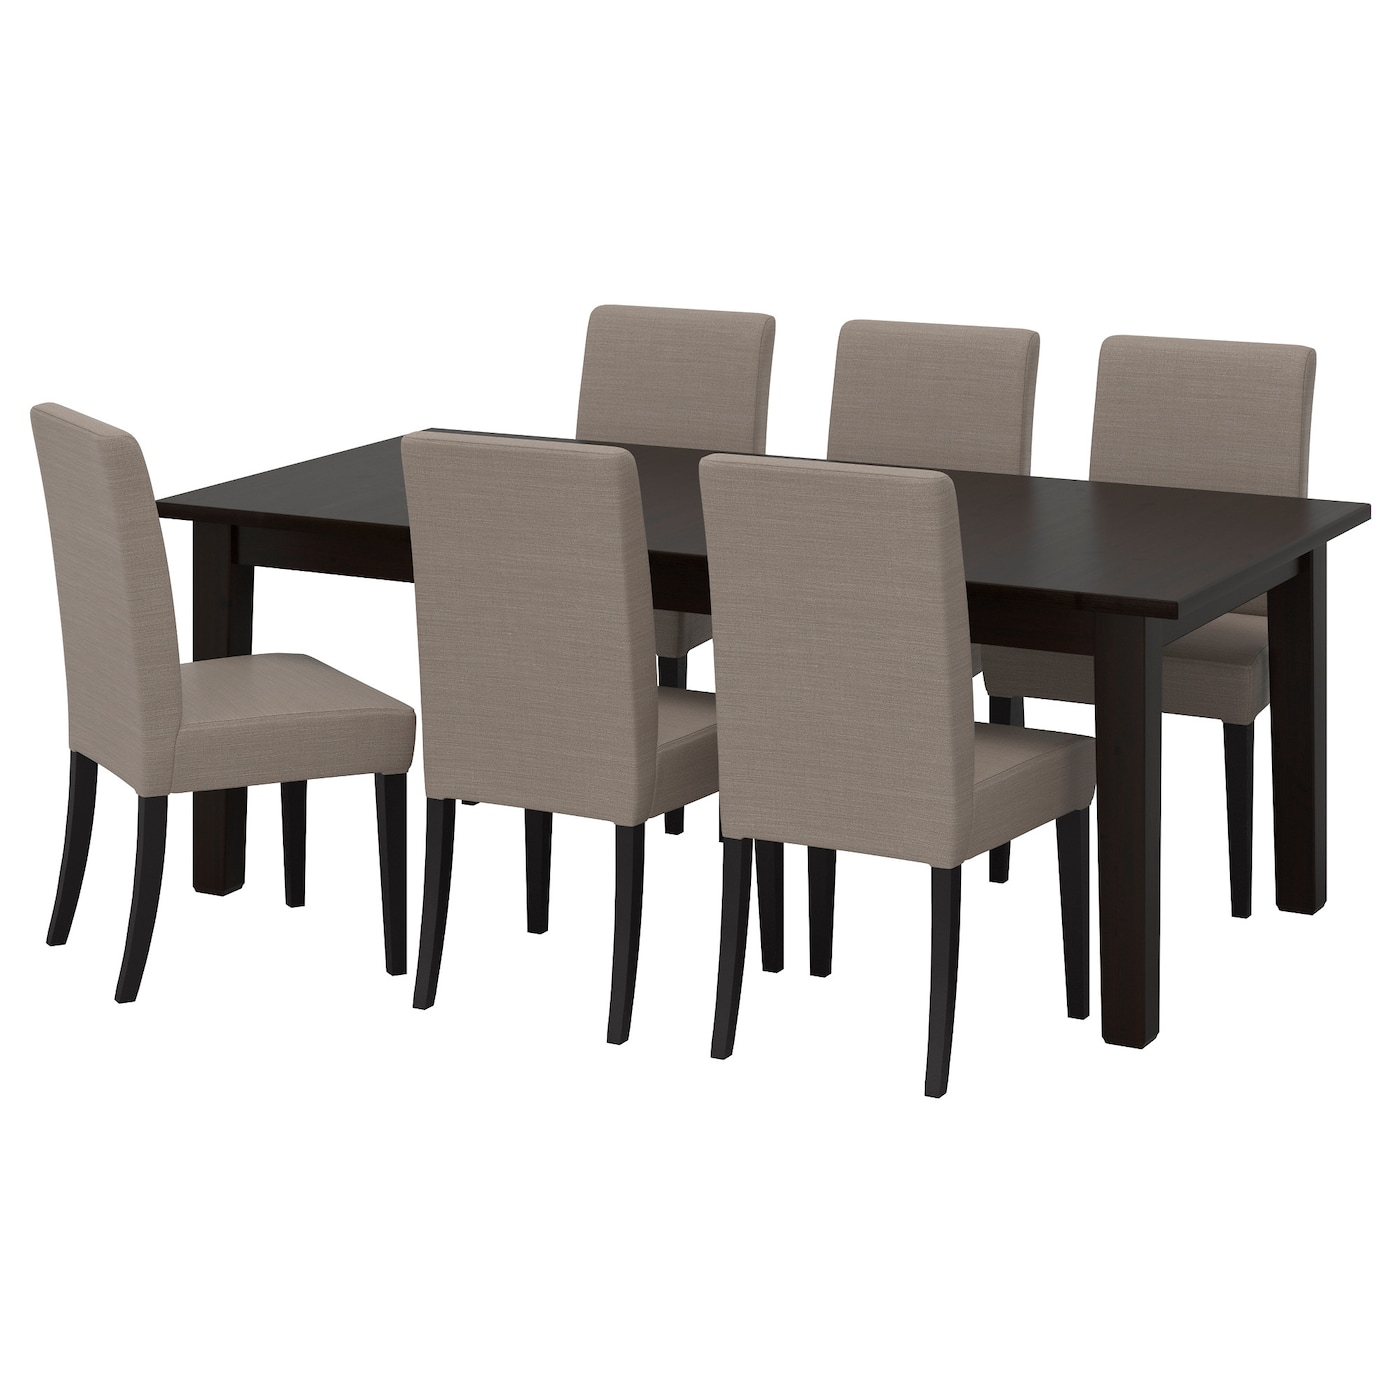 Henriksdal storn s table and 6 chairs brown black nolhaga for Table 4 personnes ikea